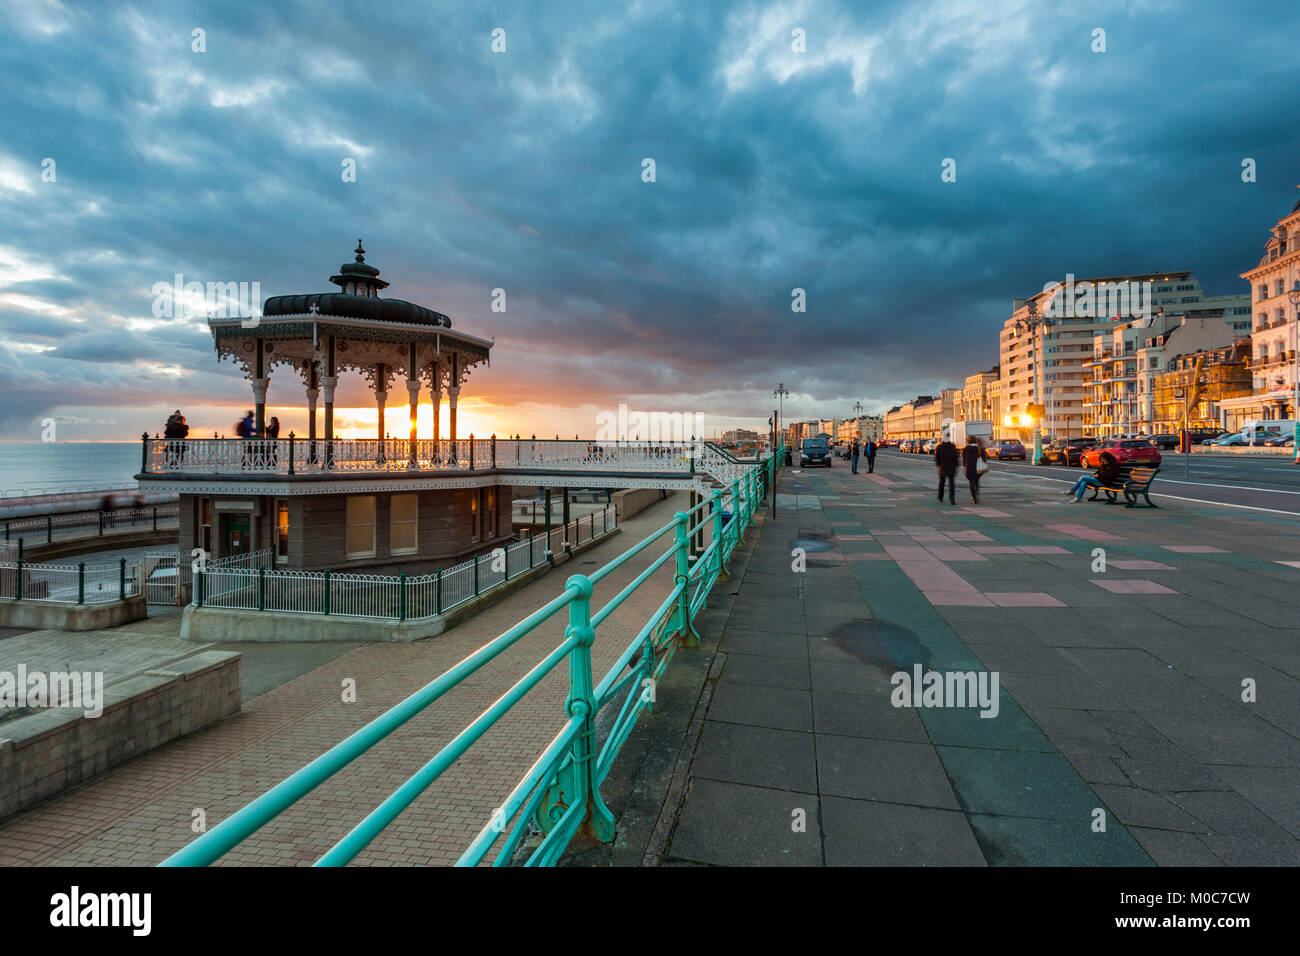 Sunset at the Bandstand at Brighton seafront, East Sussex, England. - Stock Image